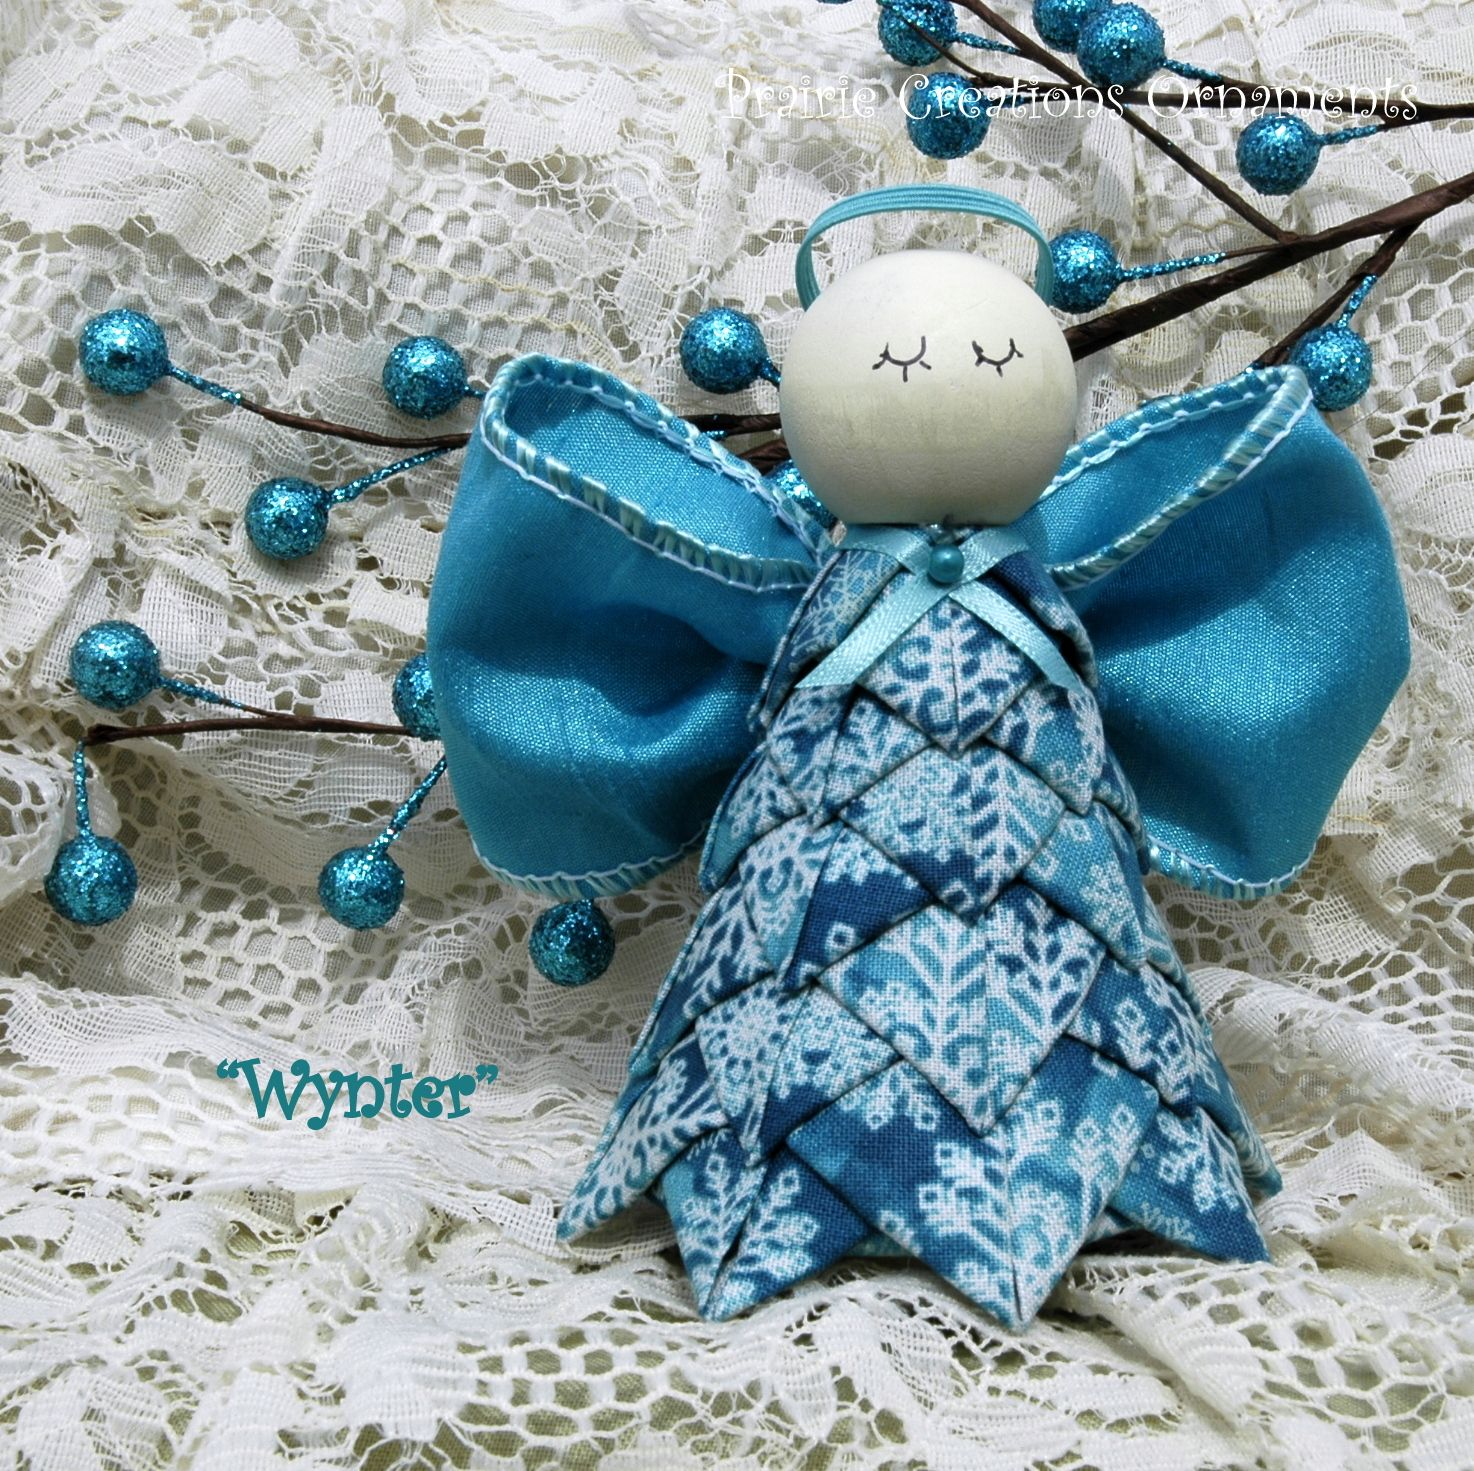 Folded fabric christmas ornaments patterns - Handmade Spark Prairie Creations Ornaments Turquoise Snowflake No Sew Quilted Angel Ornament Kit And Pattern Wynter